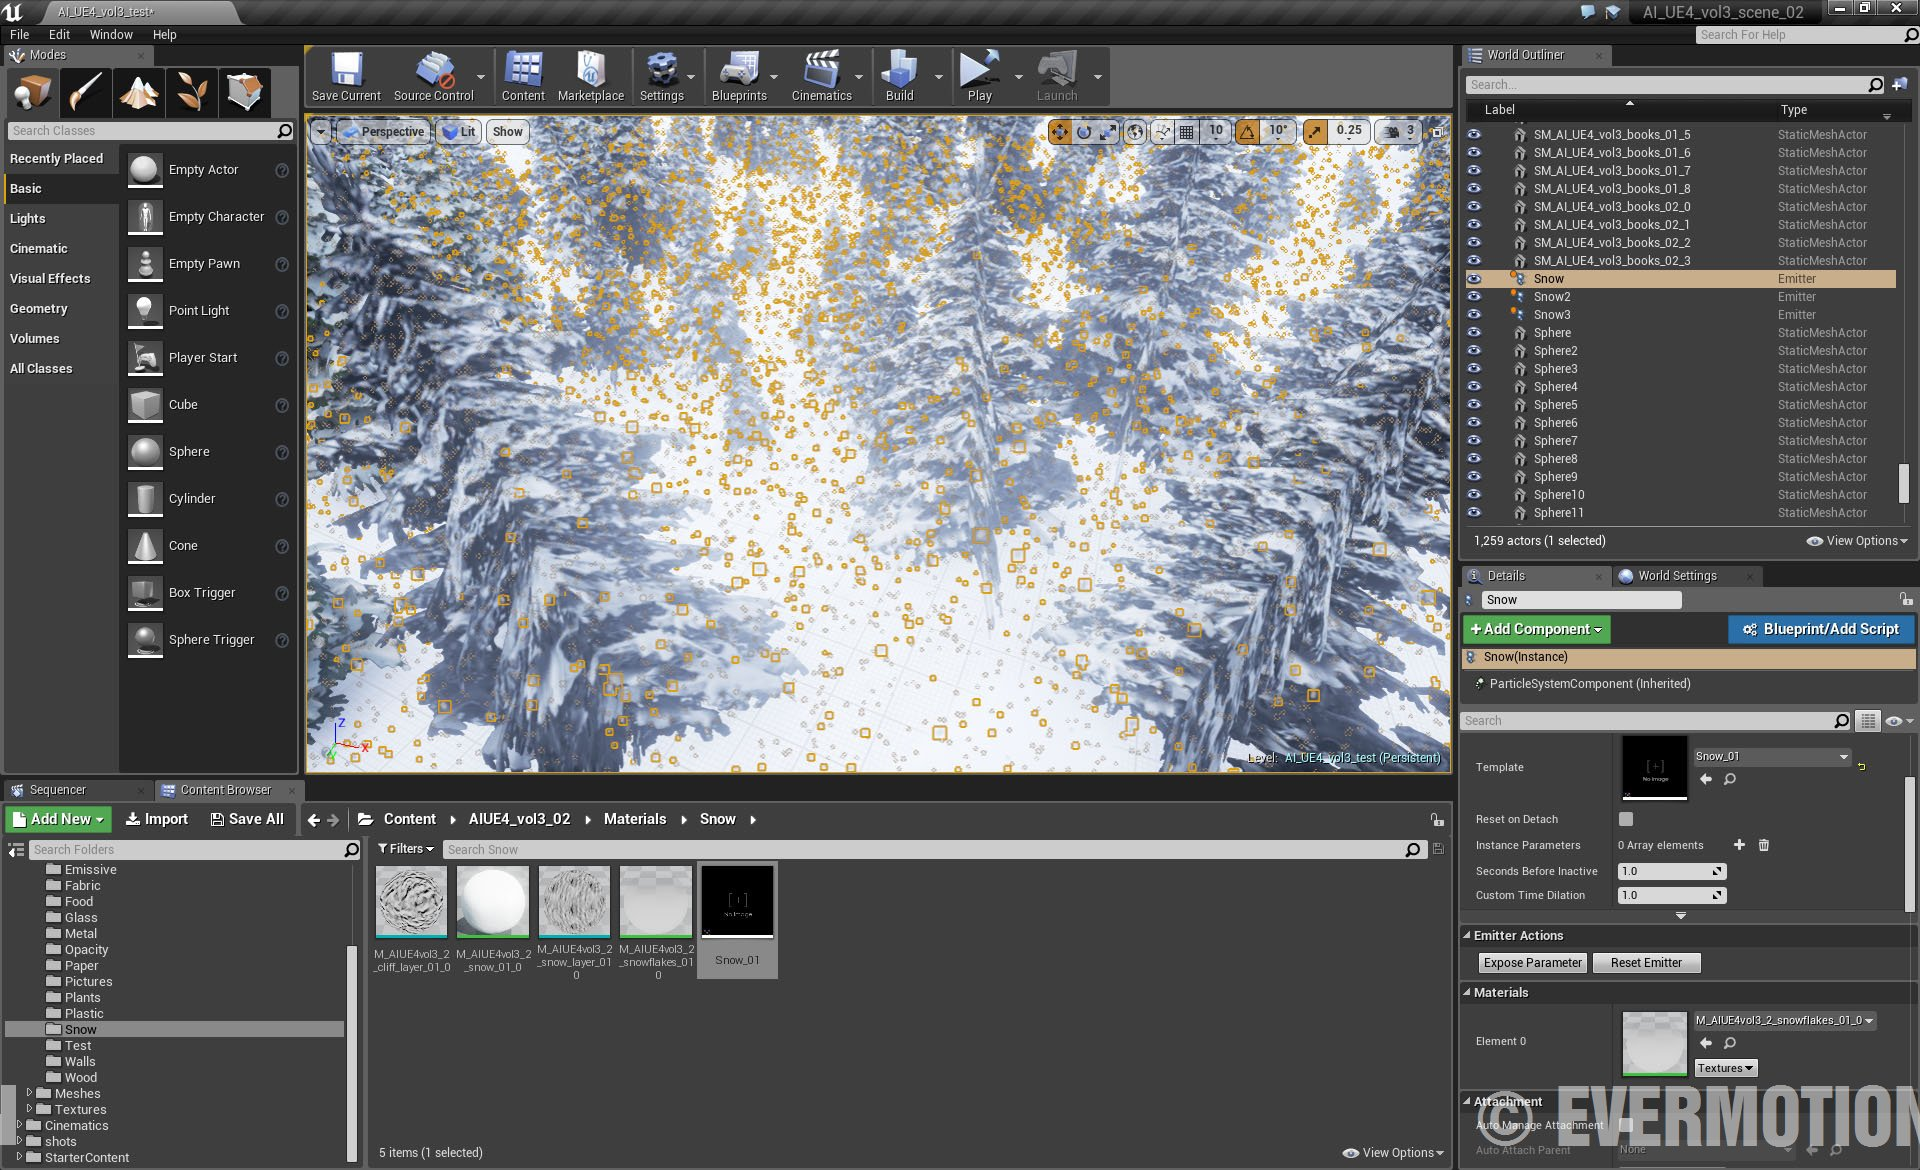 AI3UE_S2__0024_Layer_4b_evermotion_00258.jpg